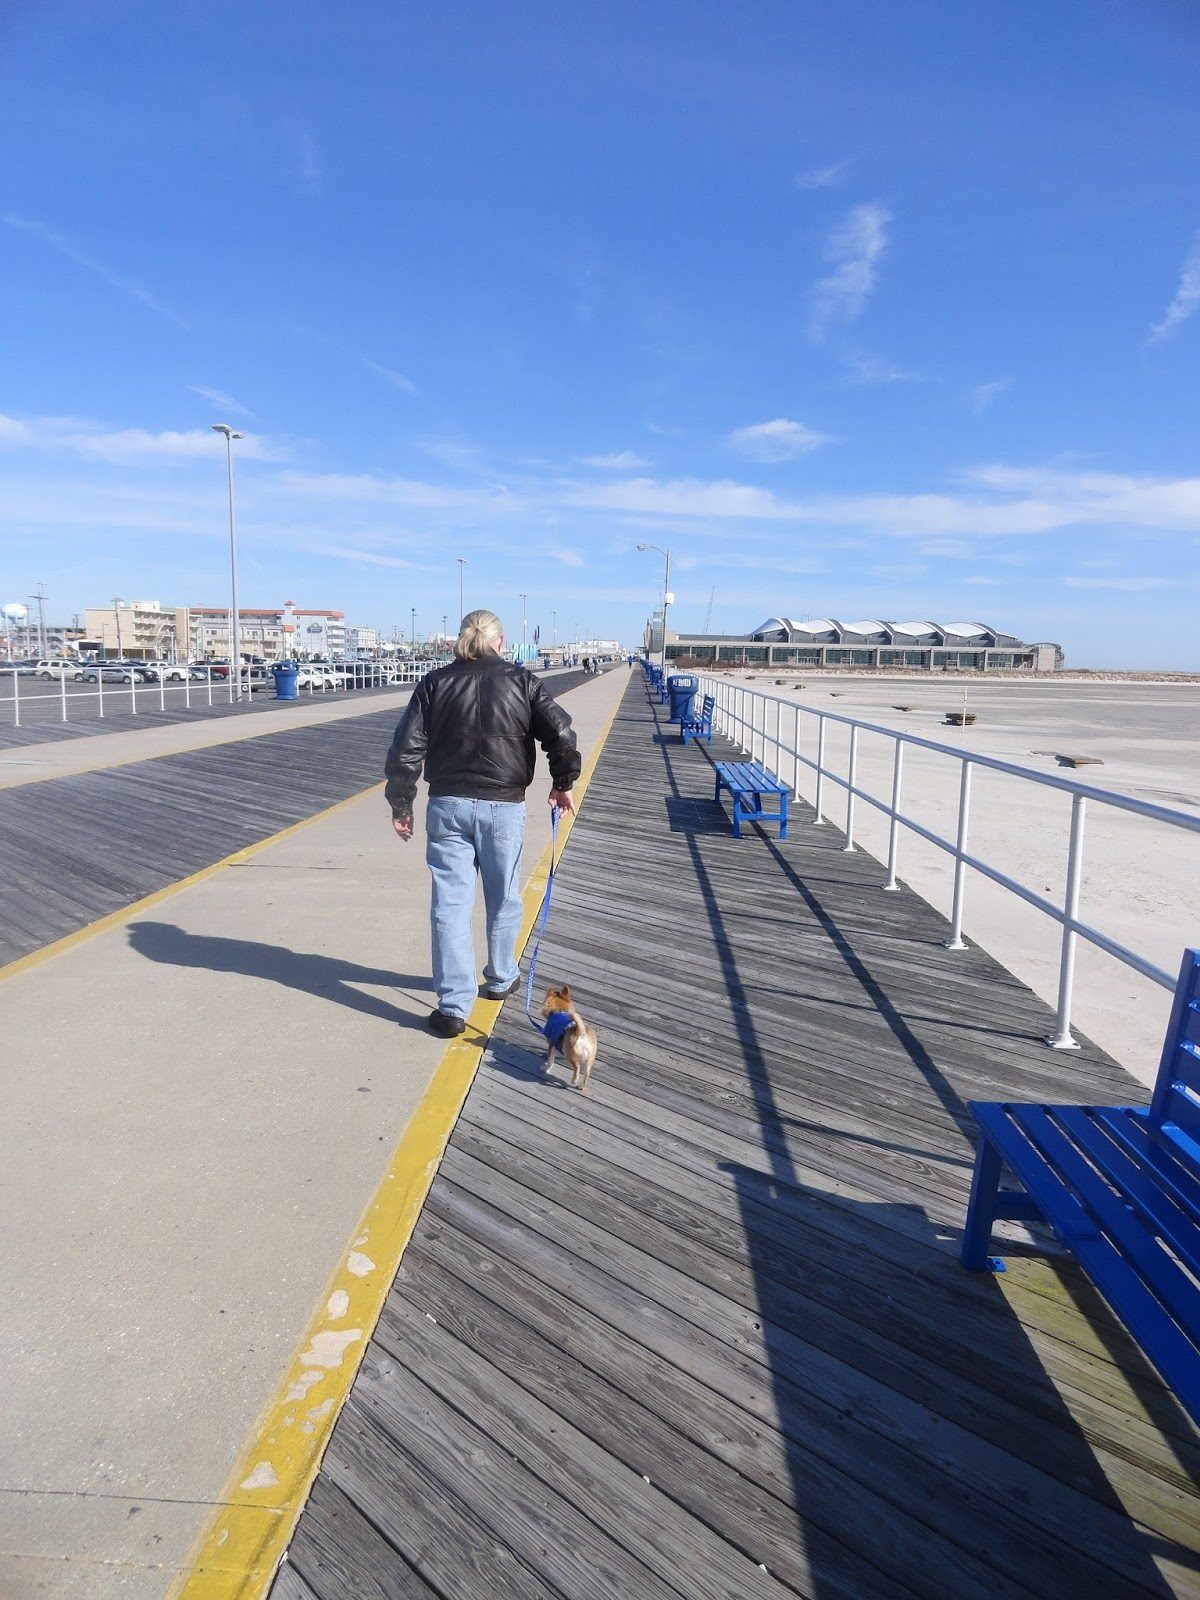 Wildwood weather mornin its 39 in wildwood nj breezes are very light out of the n nw at 4 6mph it feels like were getting some peeks of winter rather than those nvjuhfo Choice Image